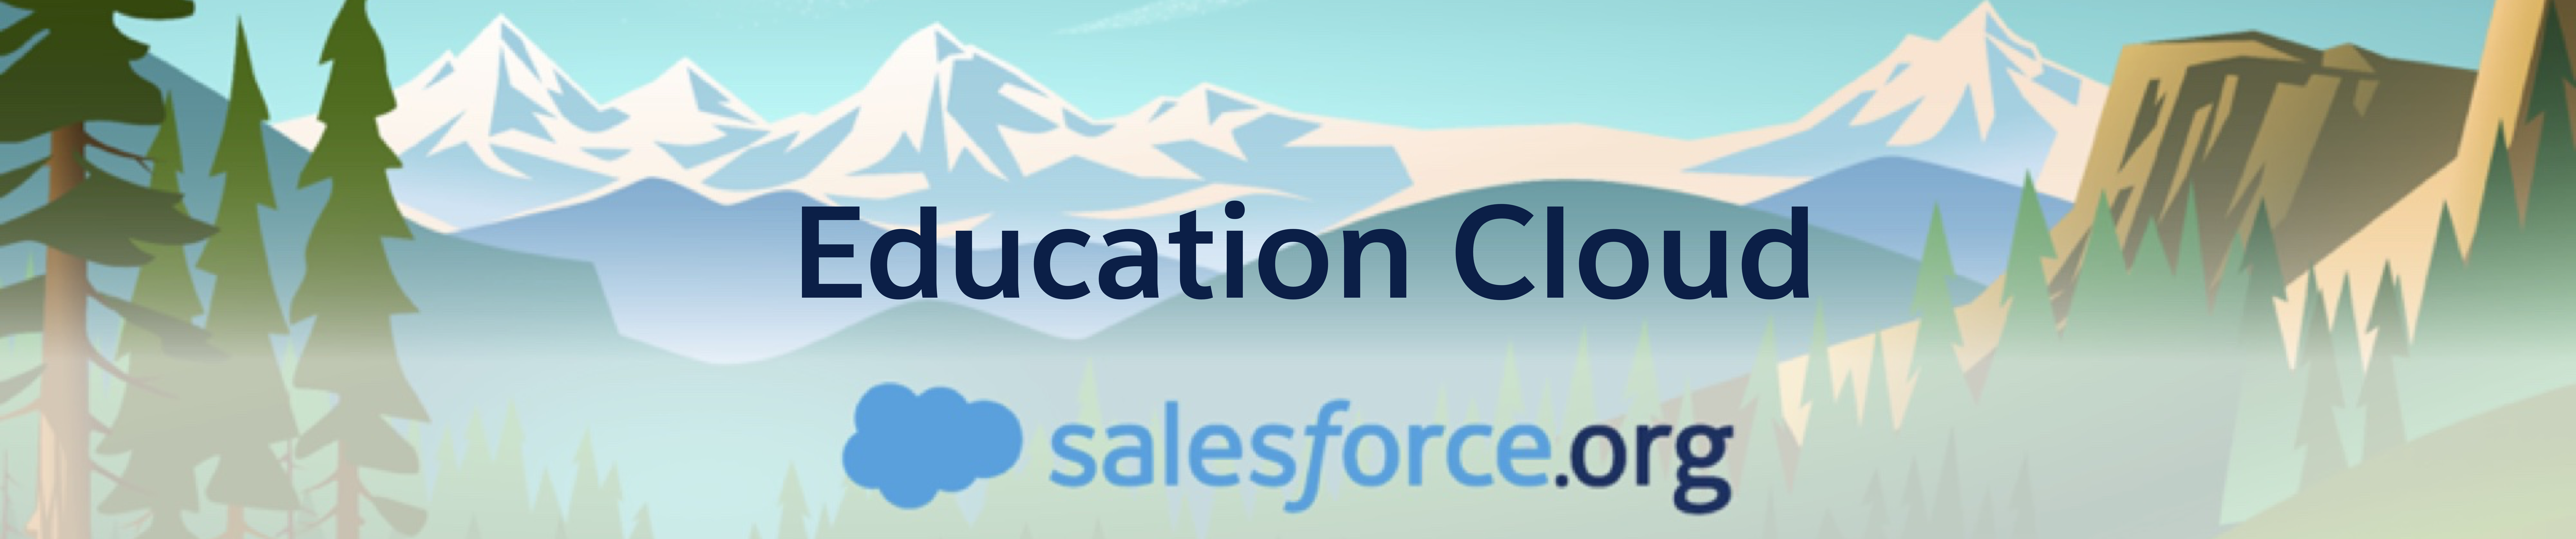 /s/EducationCloudBanner.png?v=1